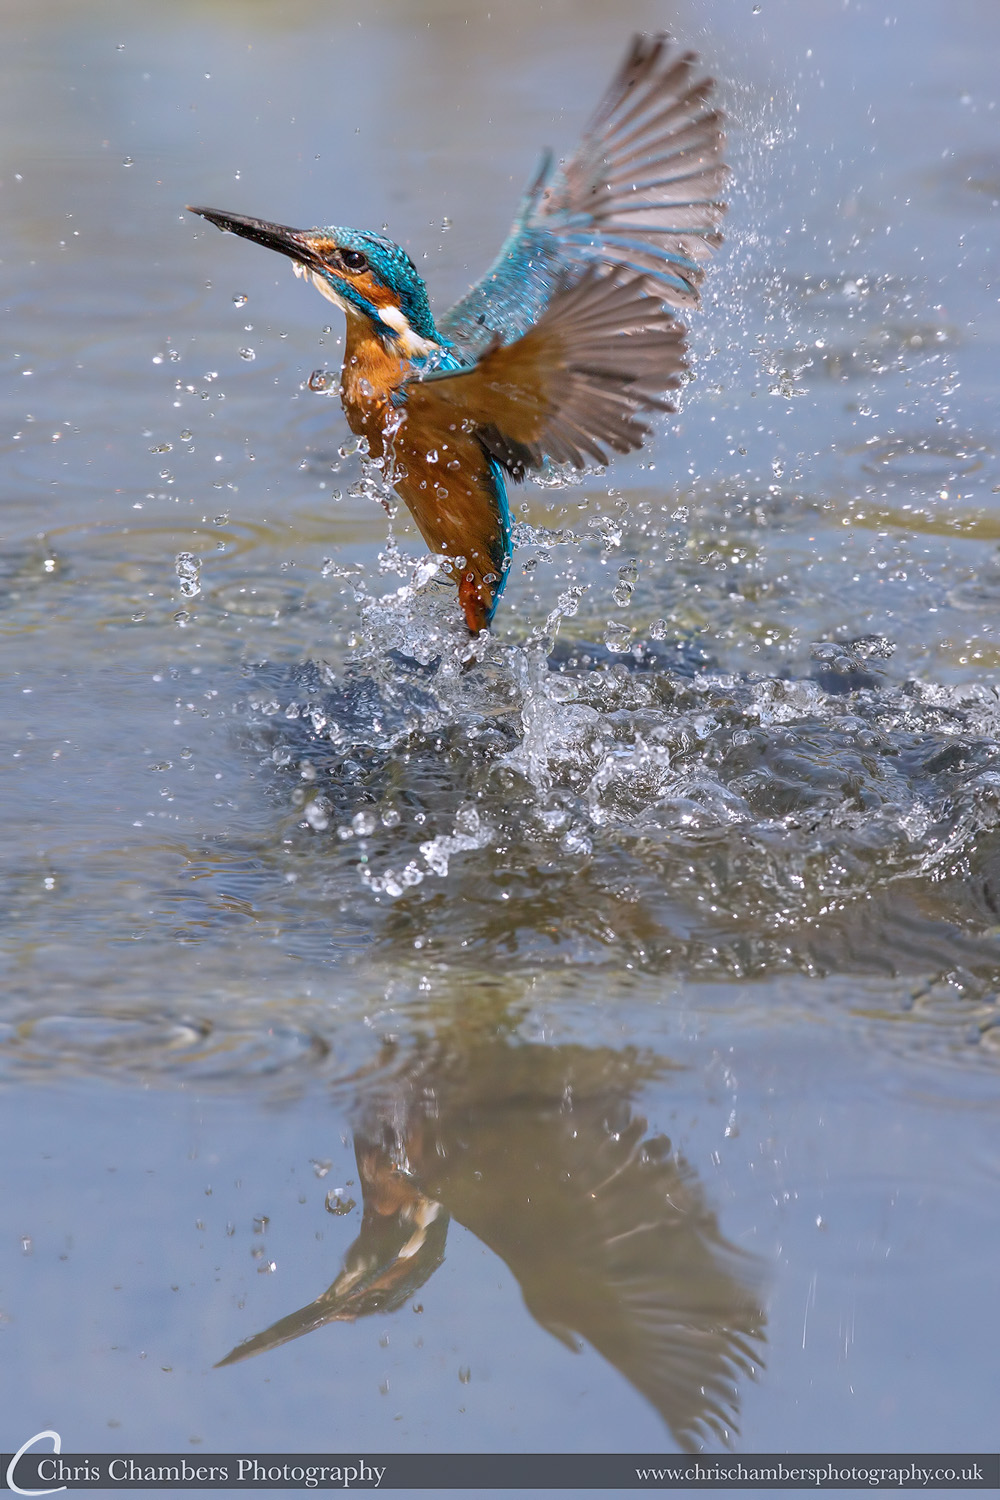 Kingfisher bursts from the water with fish. Alcedo at this Diving Kingfisher photography. Yorkshire wildlife photography